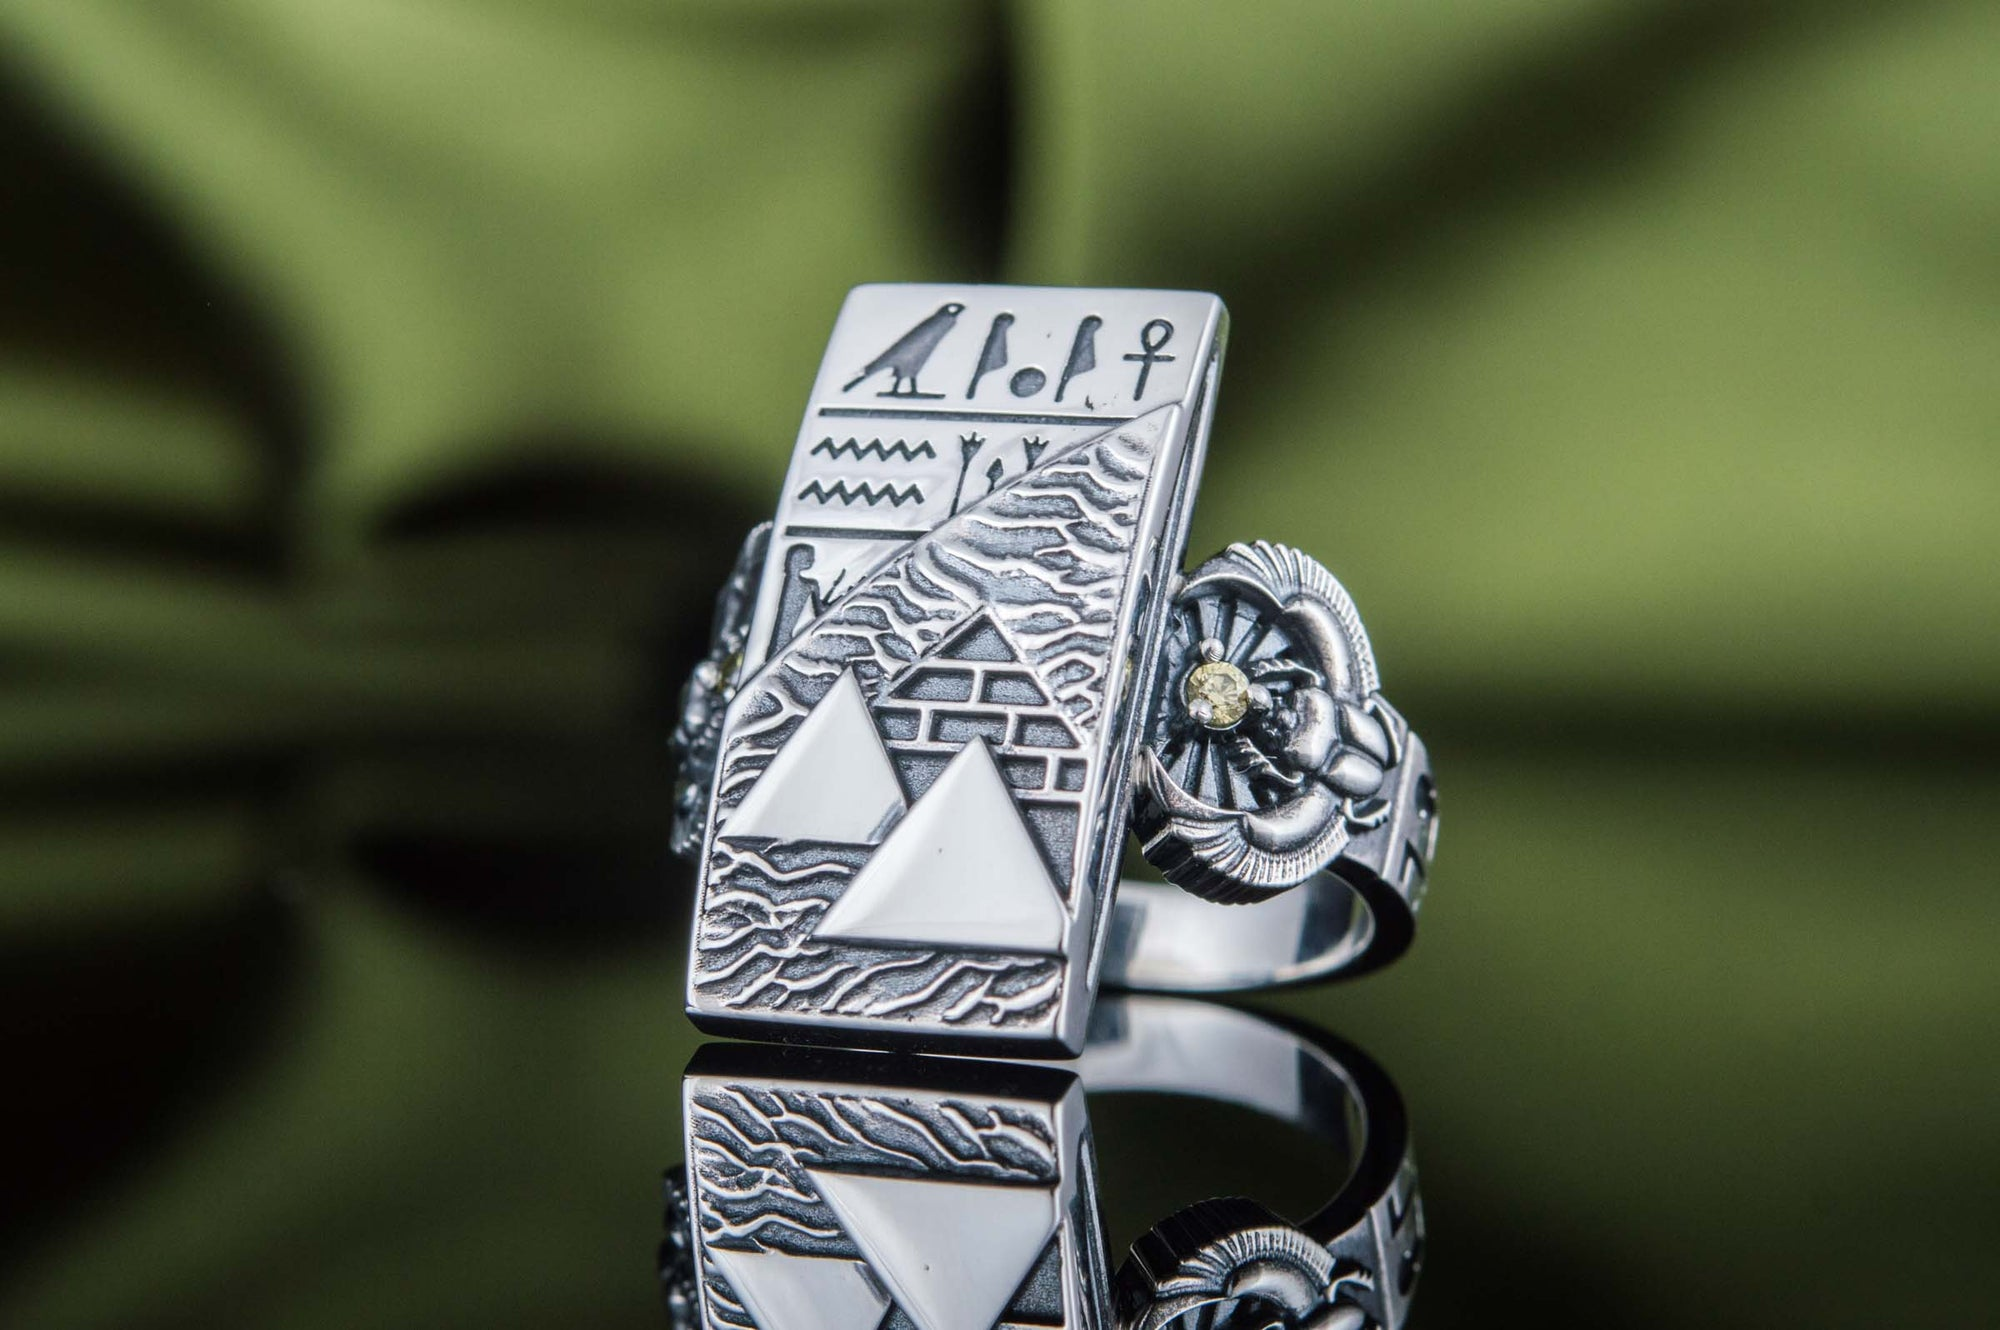 Rings Ancient Egypt Sterling Silver Ring with Pyramid & Hieroglyphics Ancient Treasures Ancientreasures Viking Odin Thor Mjolnir Celtic Ancient Egypt Norse Norse Mythology